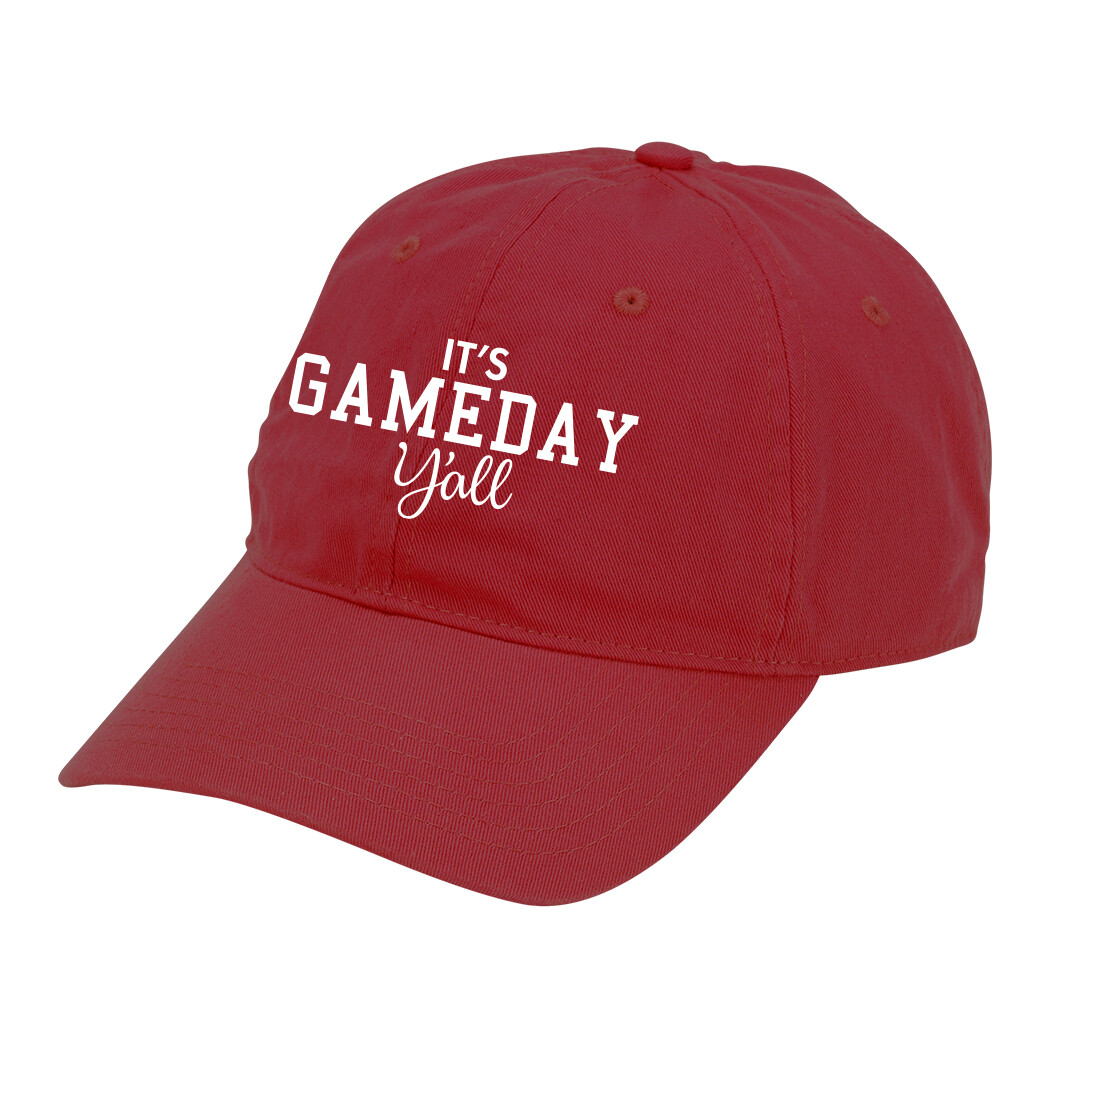 Garnet Gameday Ya'll Cap